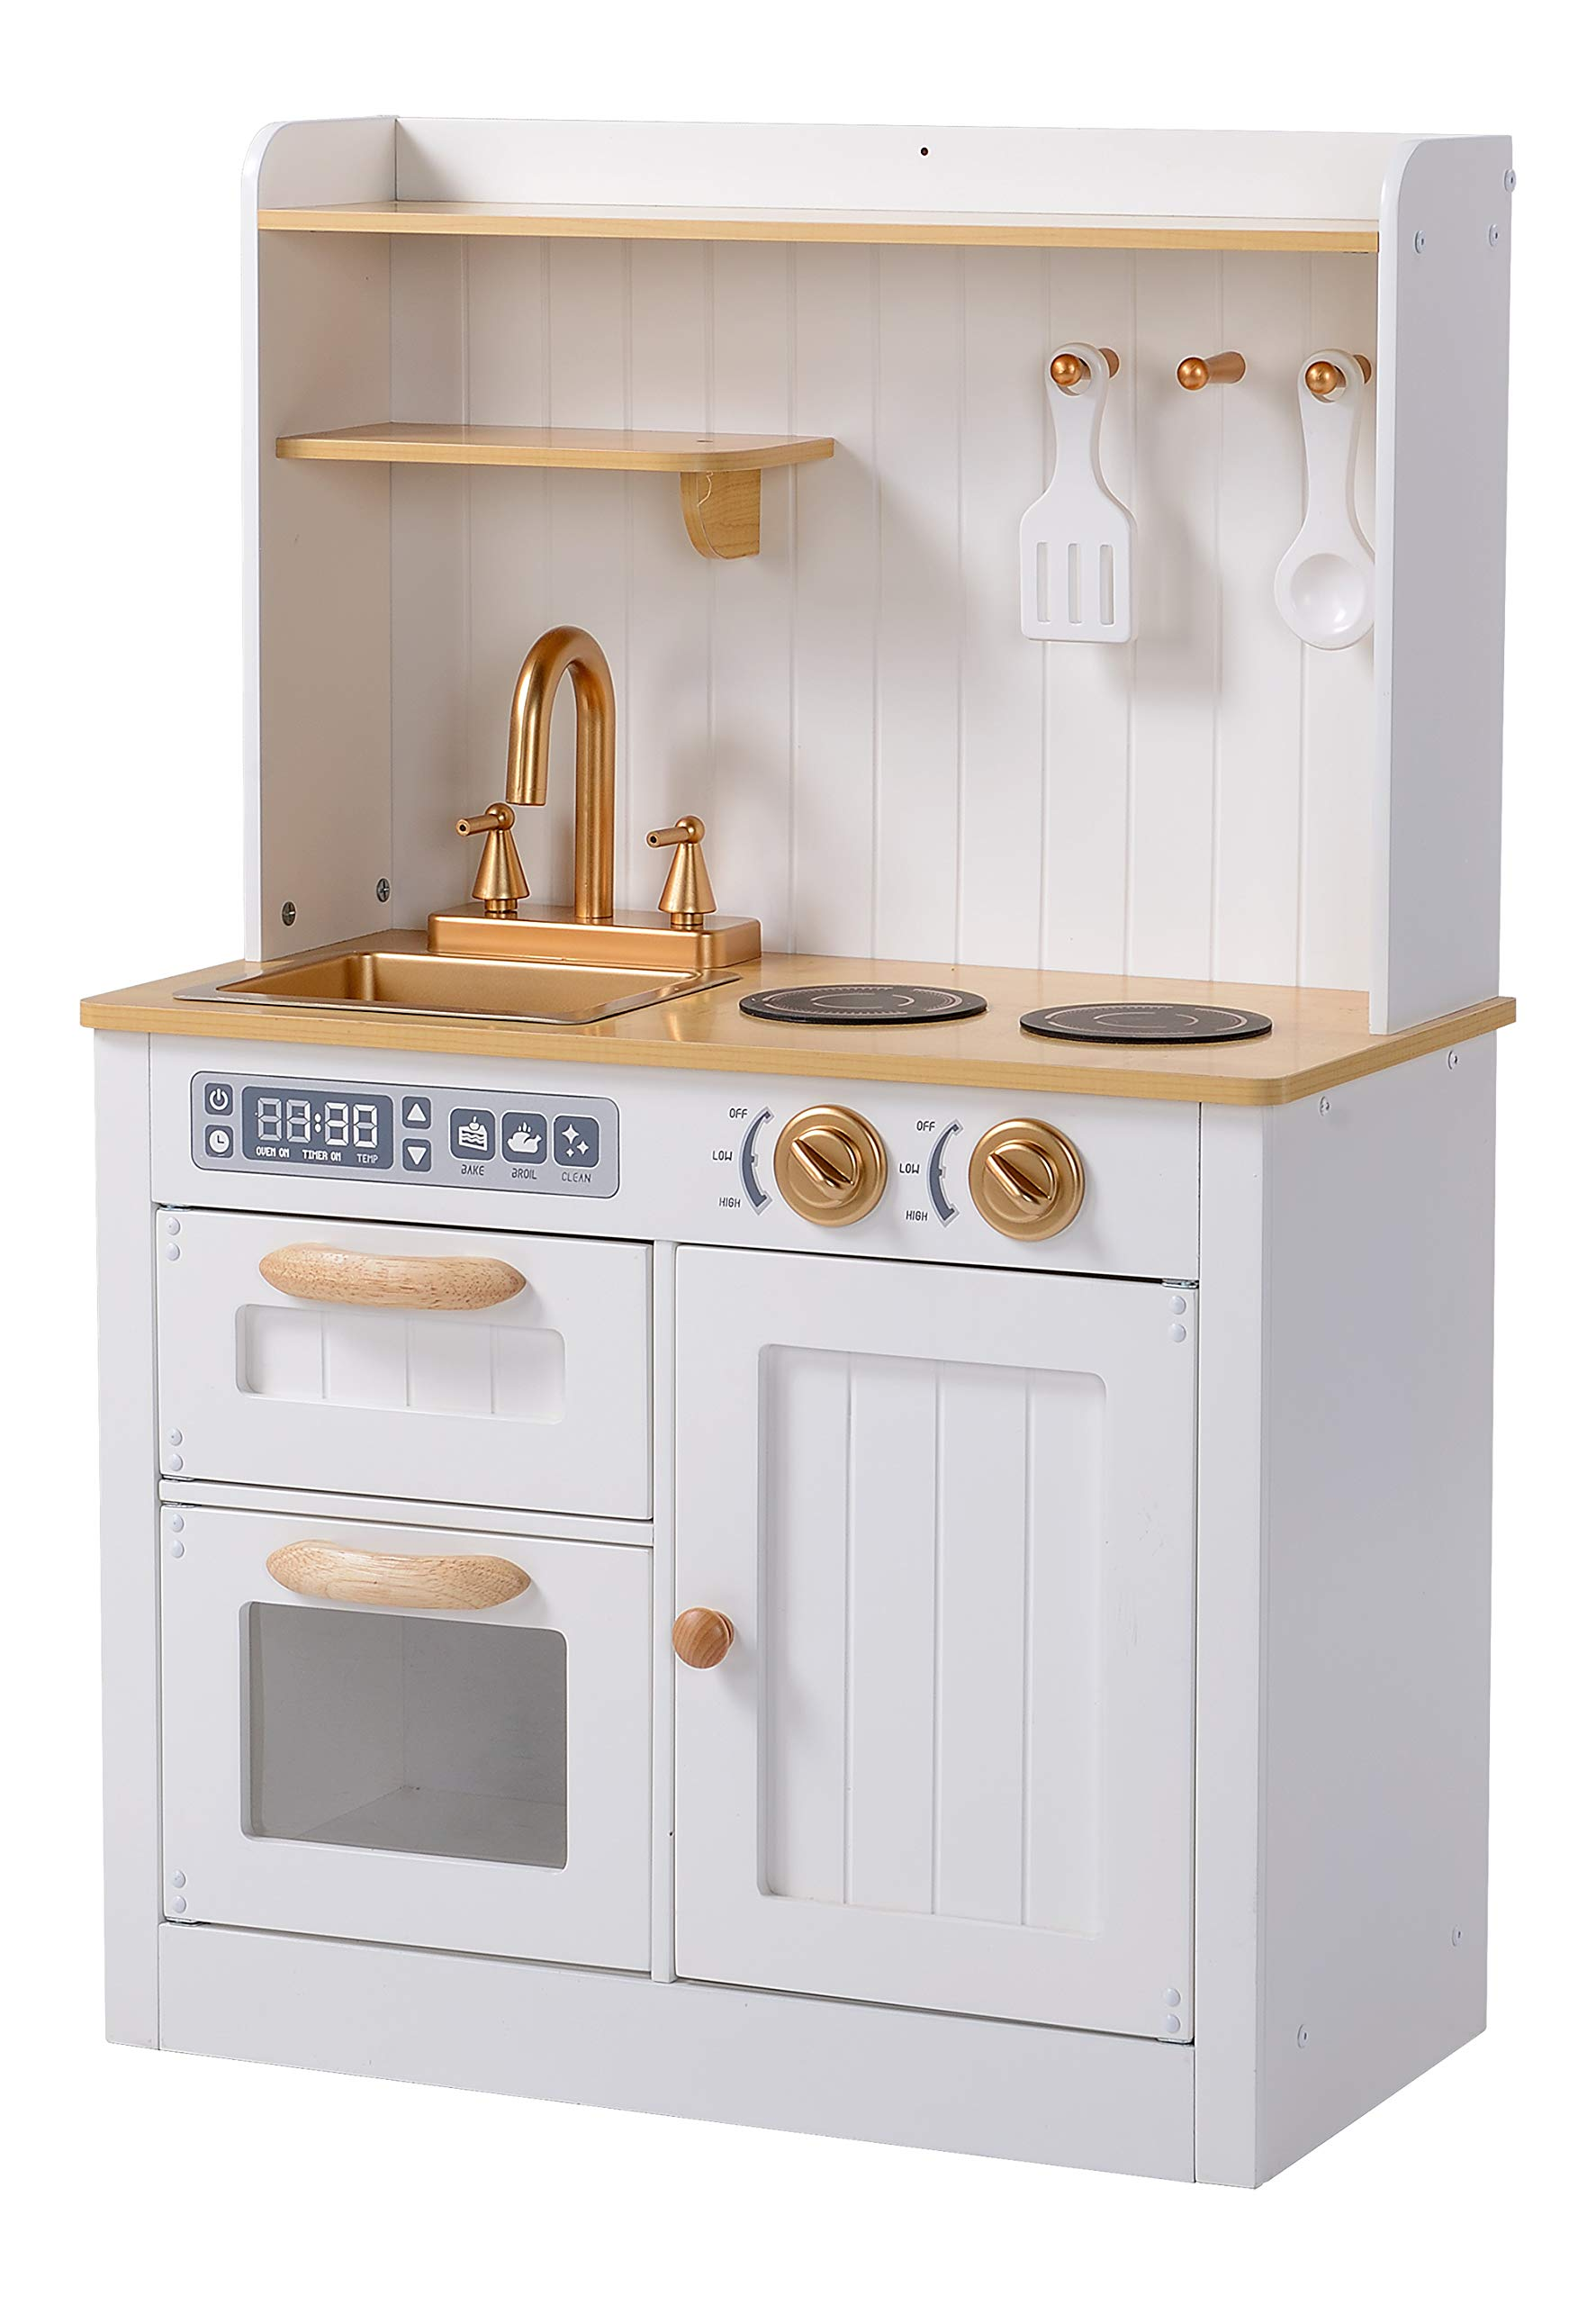 Hooga Toy Kitchen Wooden Play Kitchen With Realistic Oven Storage Cupboards Utensils And Sink With Taps White Kitchen Playset With Utensils And Interactive Dials Buy Online In Dominica At Dominica Desertcart Com Productid